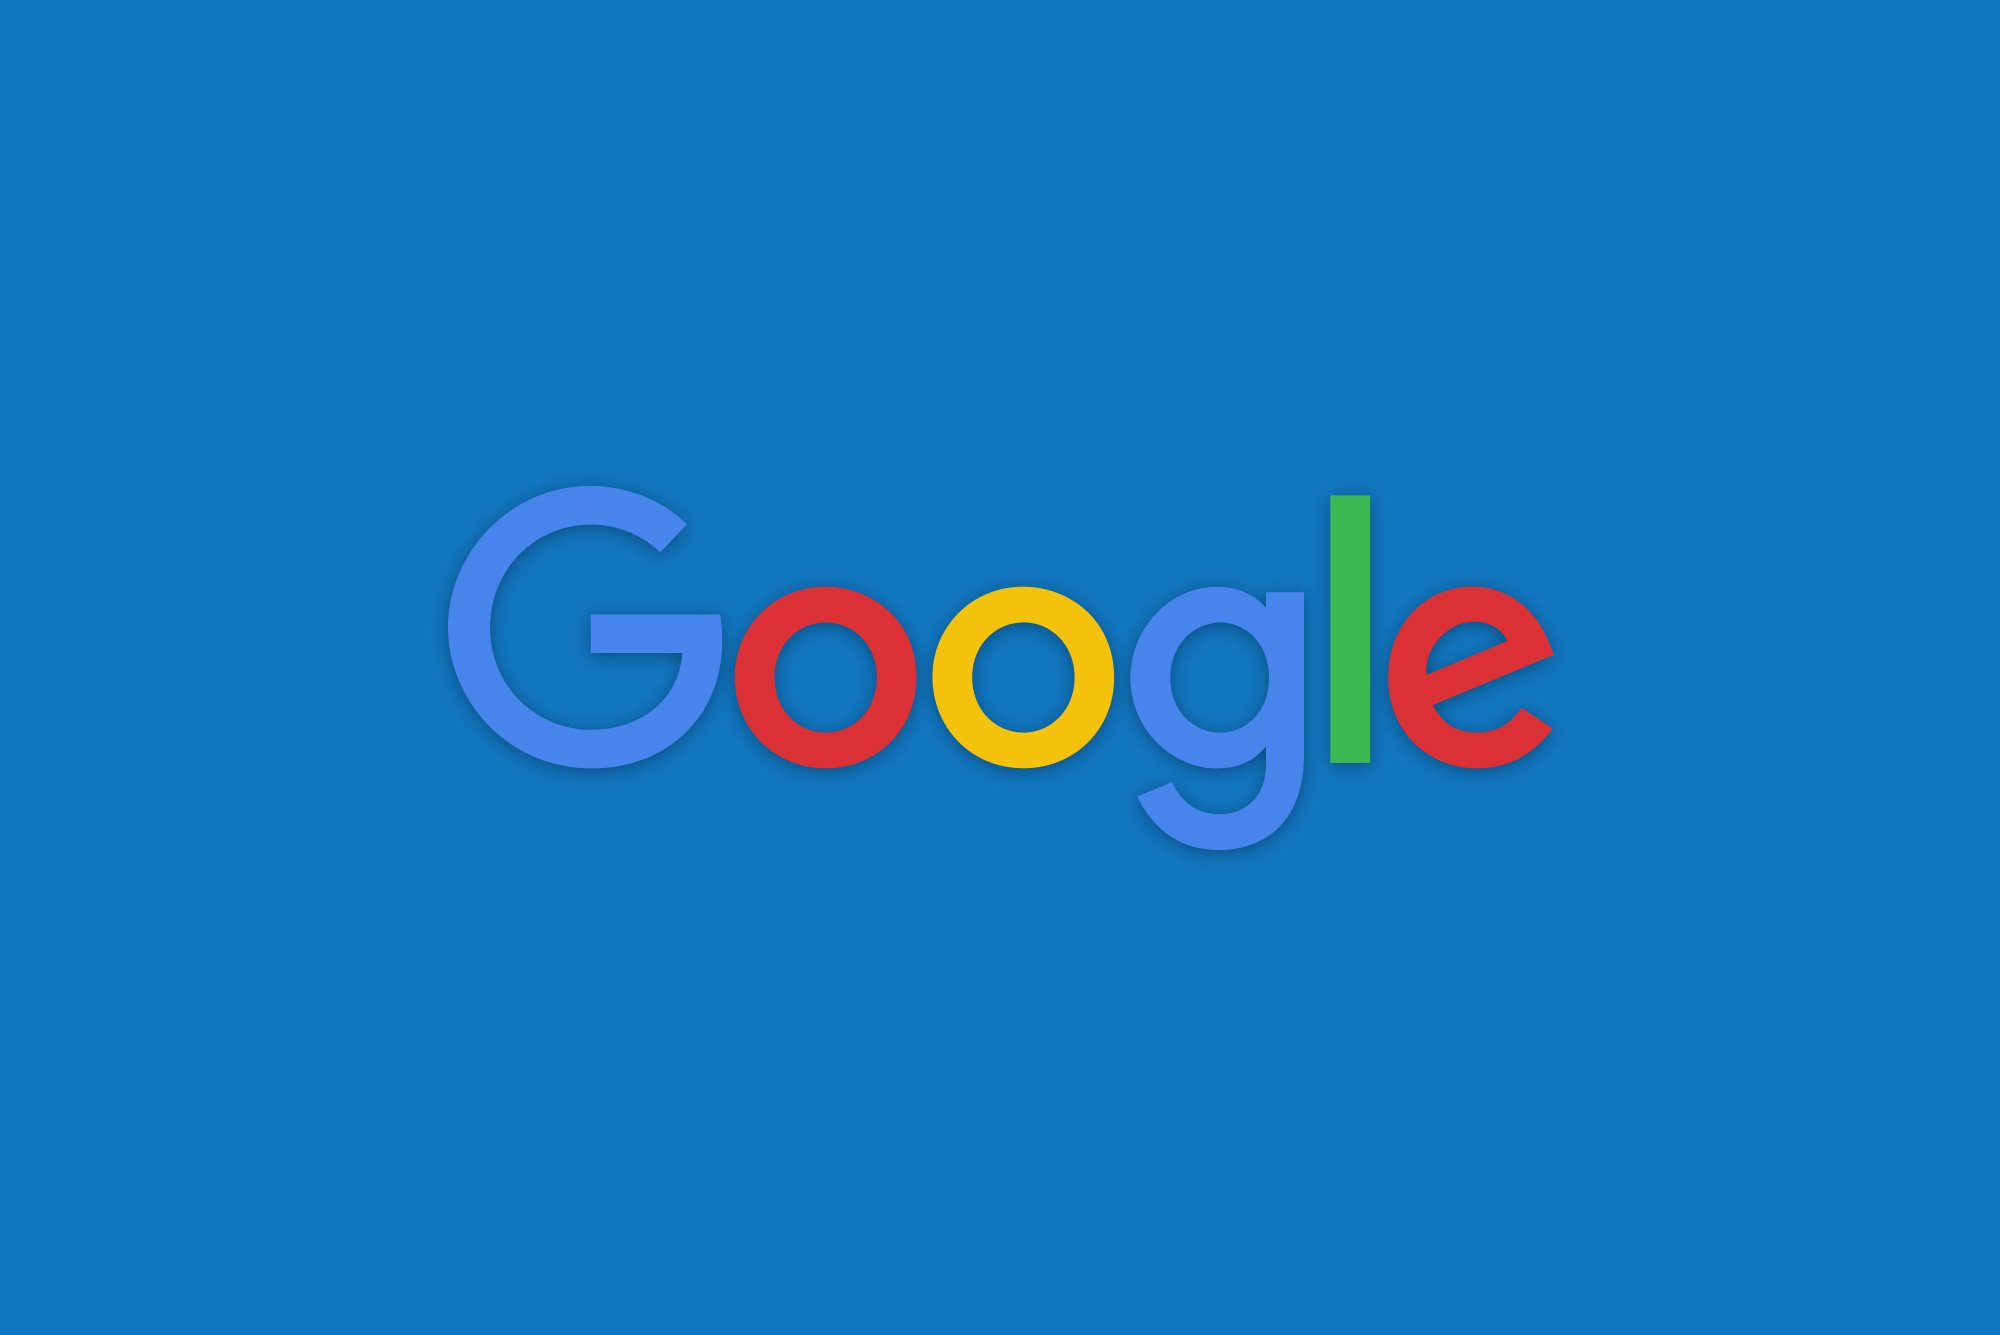 Google logo on blue background - improve your searches on Google